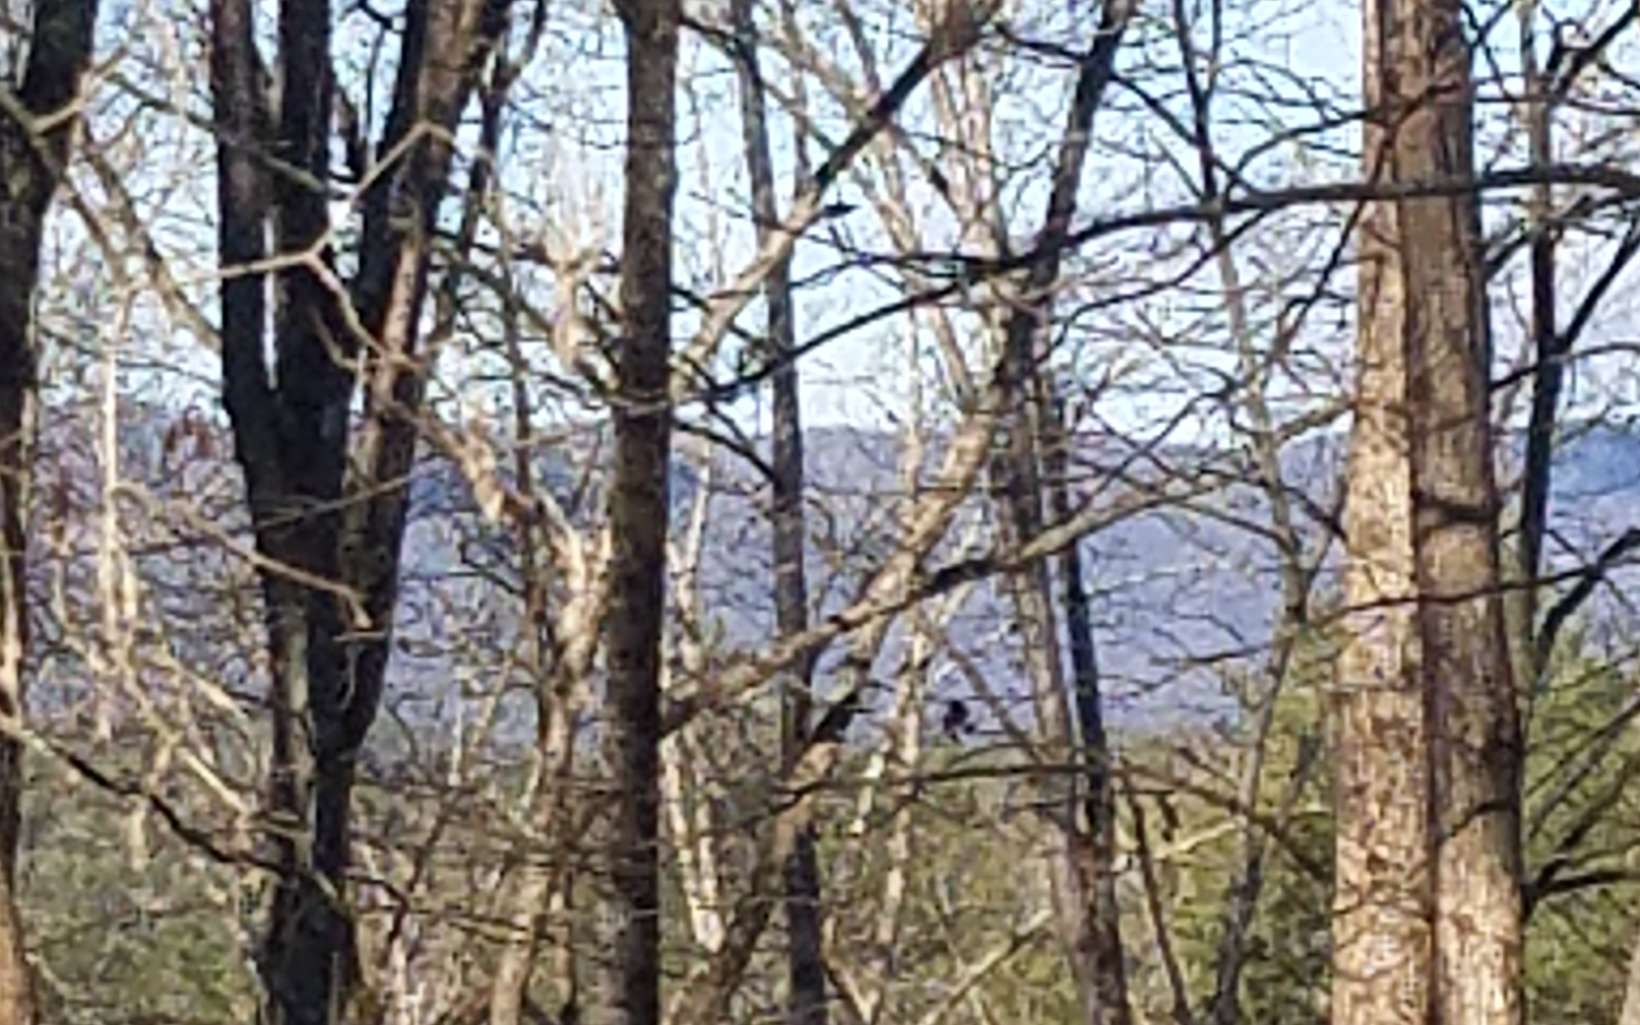 Long Range Mountain View year around w/ tree topping!!! in gated Coosawattee River Resort w/amenties: Tennis, Clubhouse, Pavilion of River for you enjoyment, ponds, etc.!!!!! Less than 5 miles from Quaint desirable town square. (soil test completed)